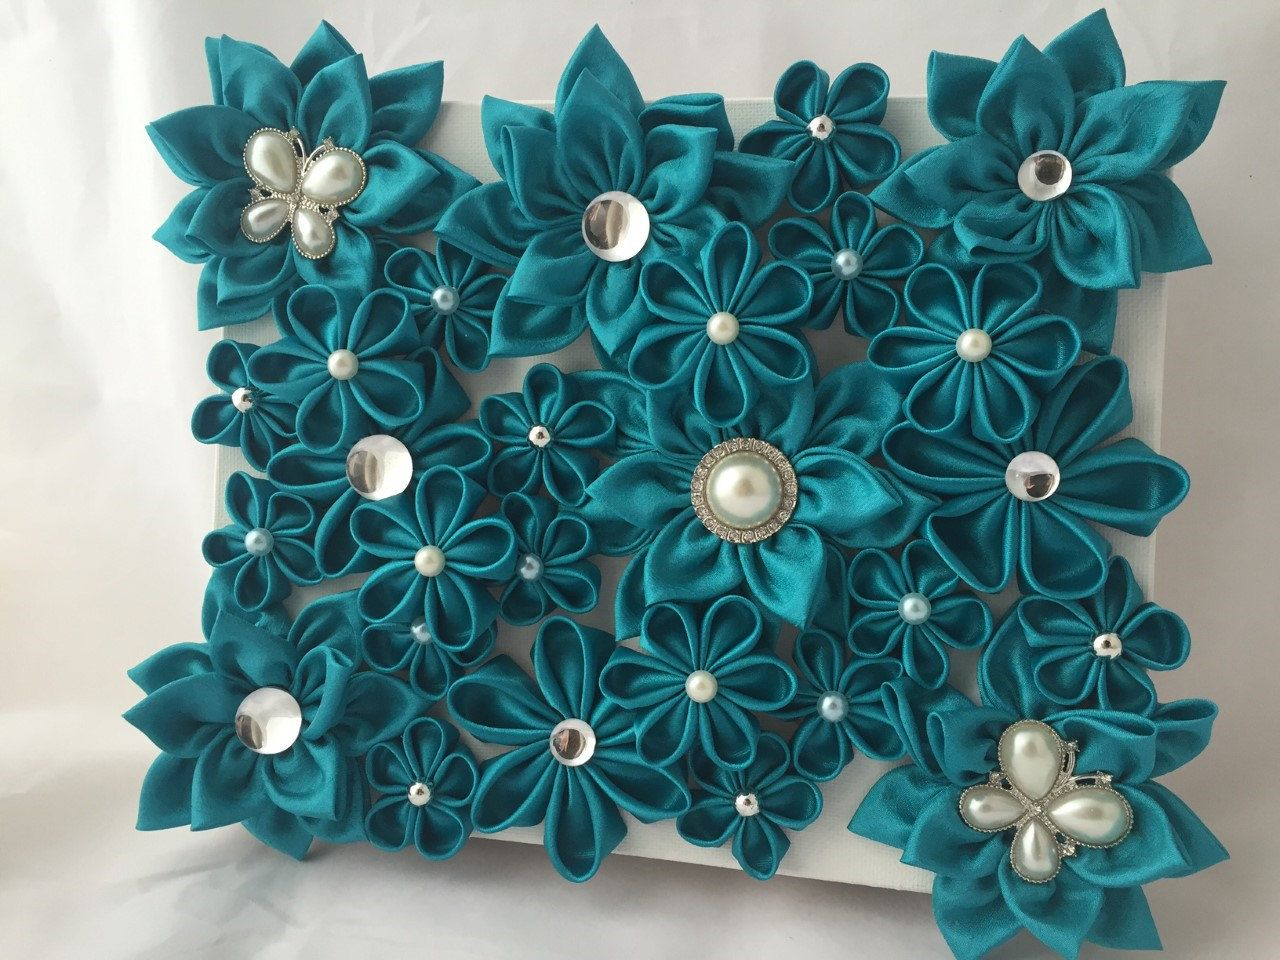 teal pearl wall decor flower handmade wall hanging